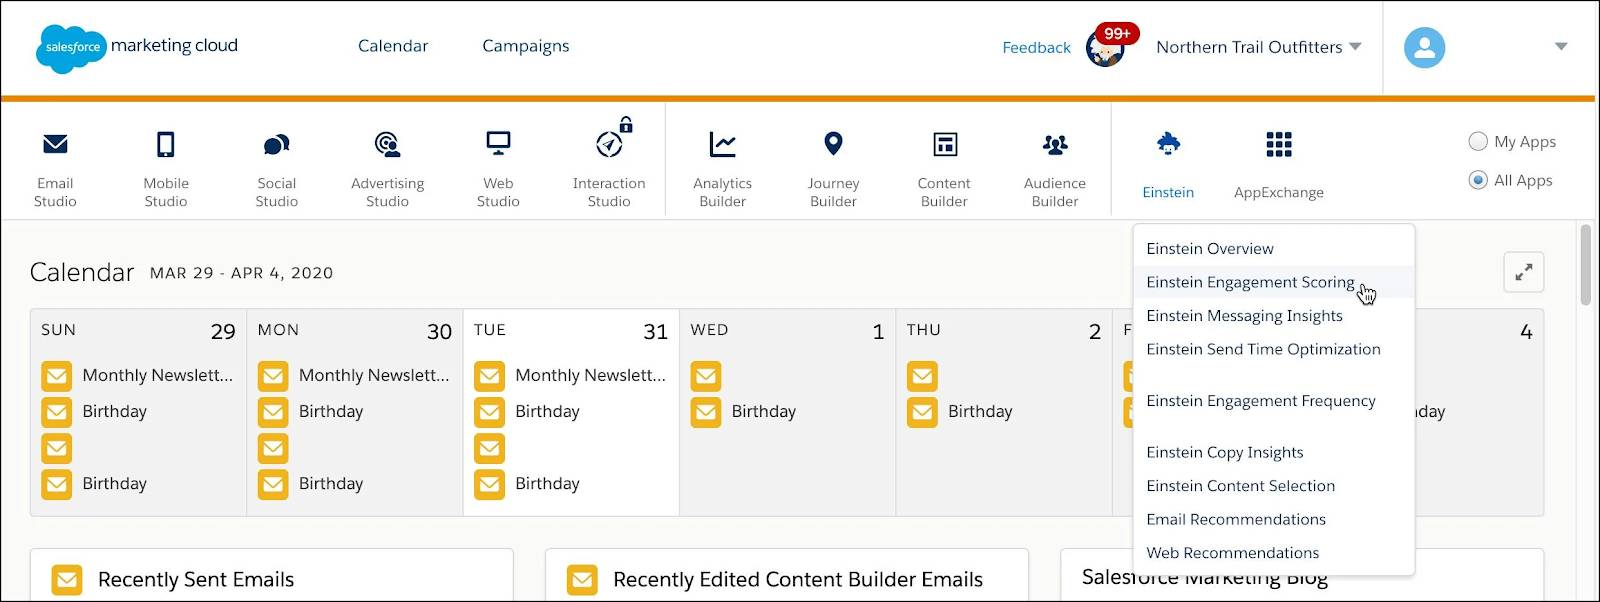 Hovering over Analytics Builder navigation item, showing dropdown options of Web & Mobile Analytics, Reports, Einstein Engagement Frequency, and Einstein Engagement Scoring